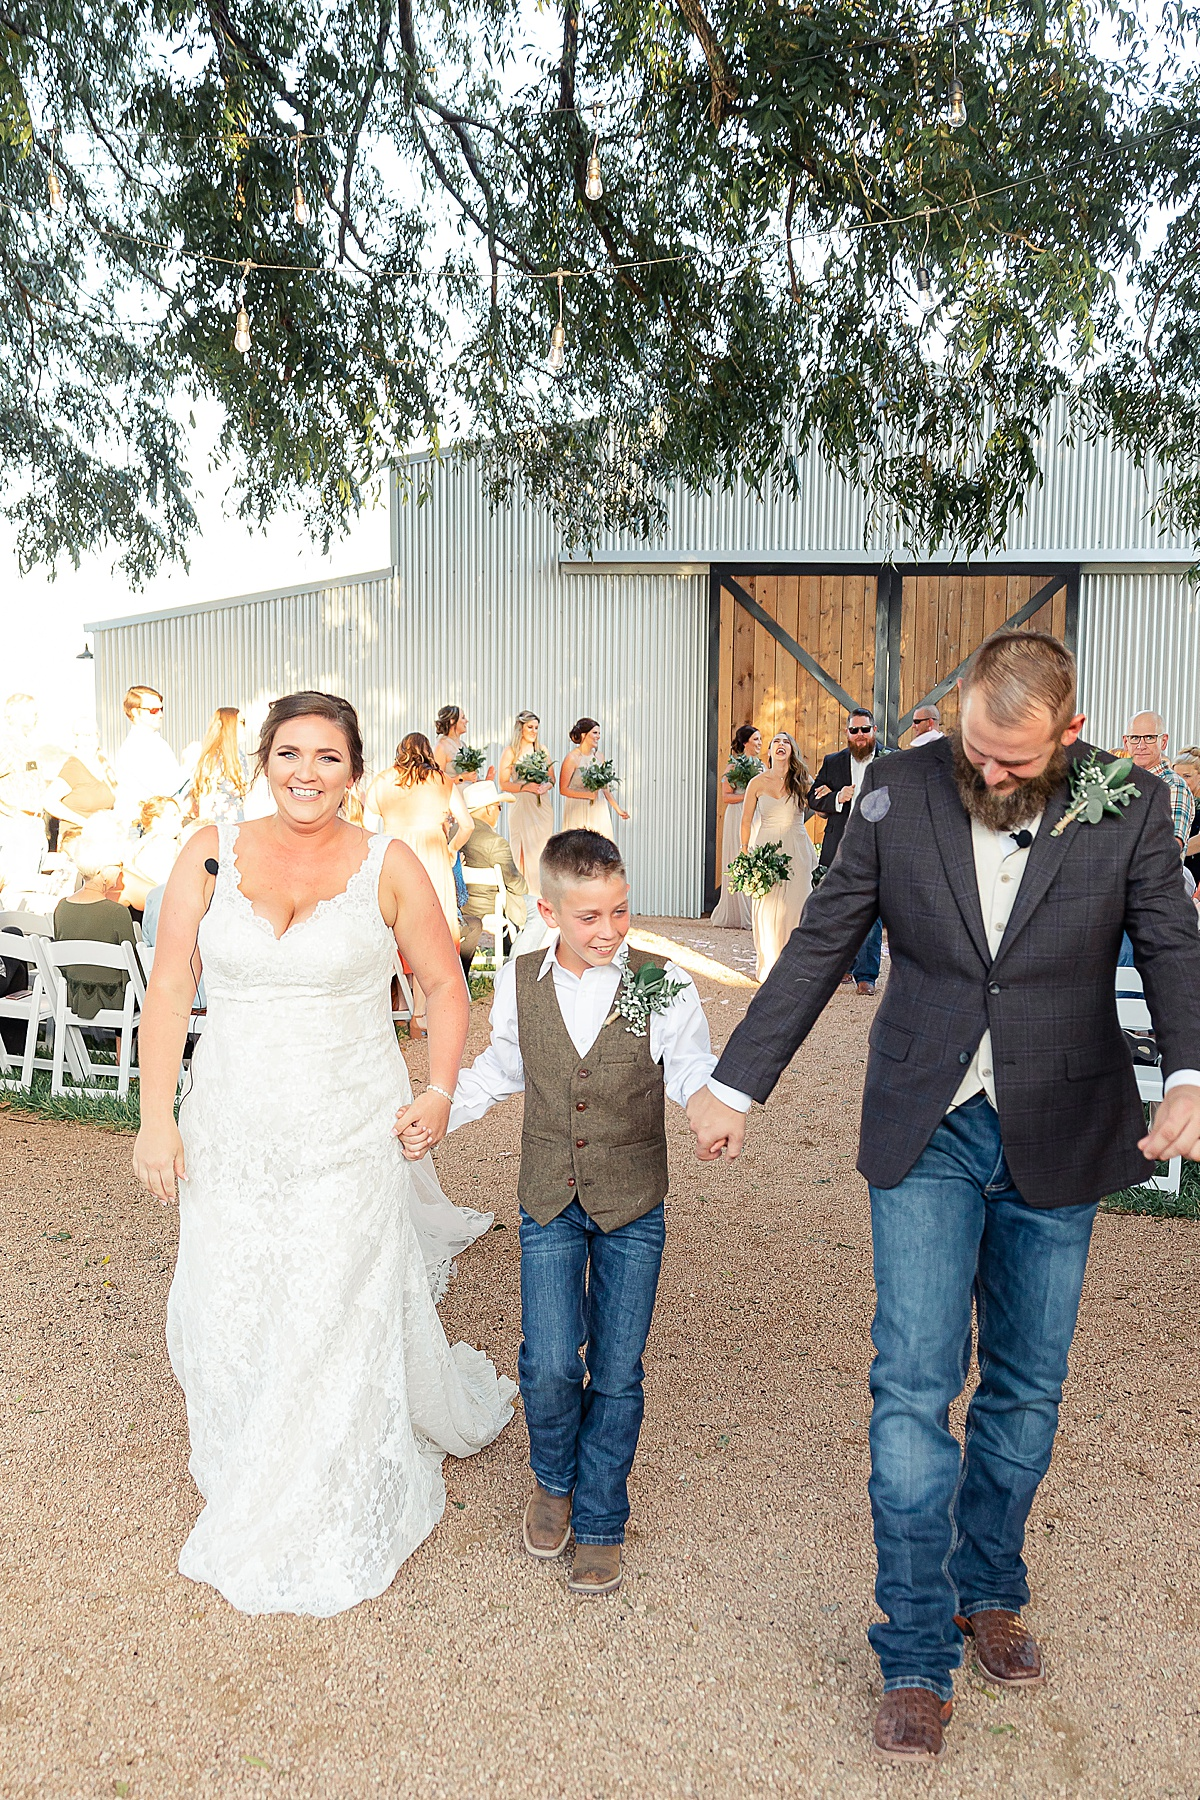 Rustic-Texas-Wedding-Hollow-Creek-Ranch-Carly-Barton-Photography_0129.jpg